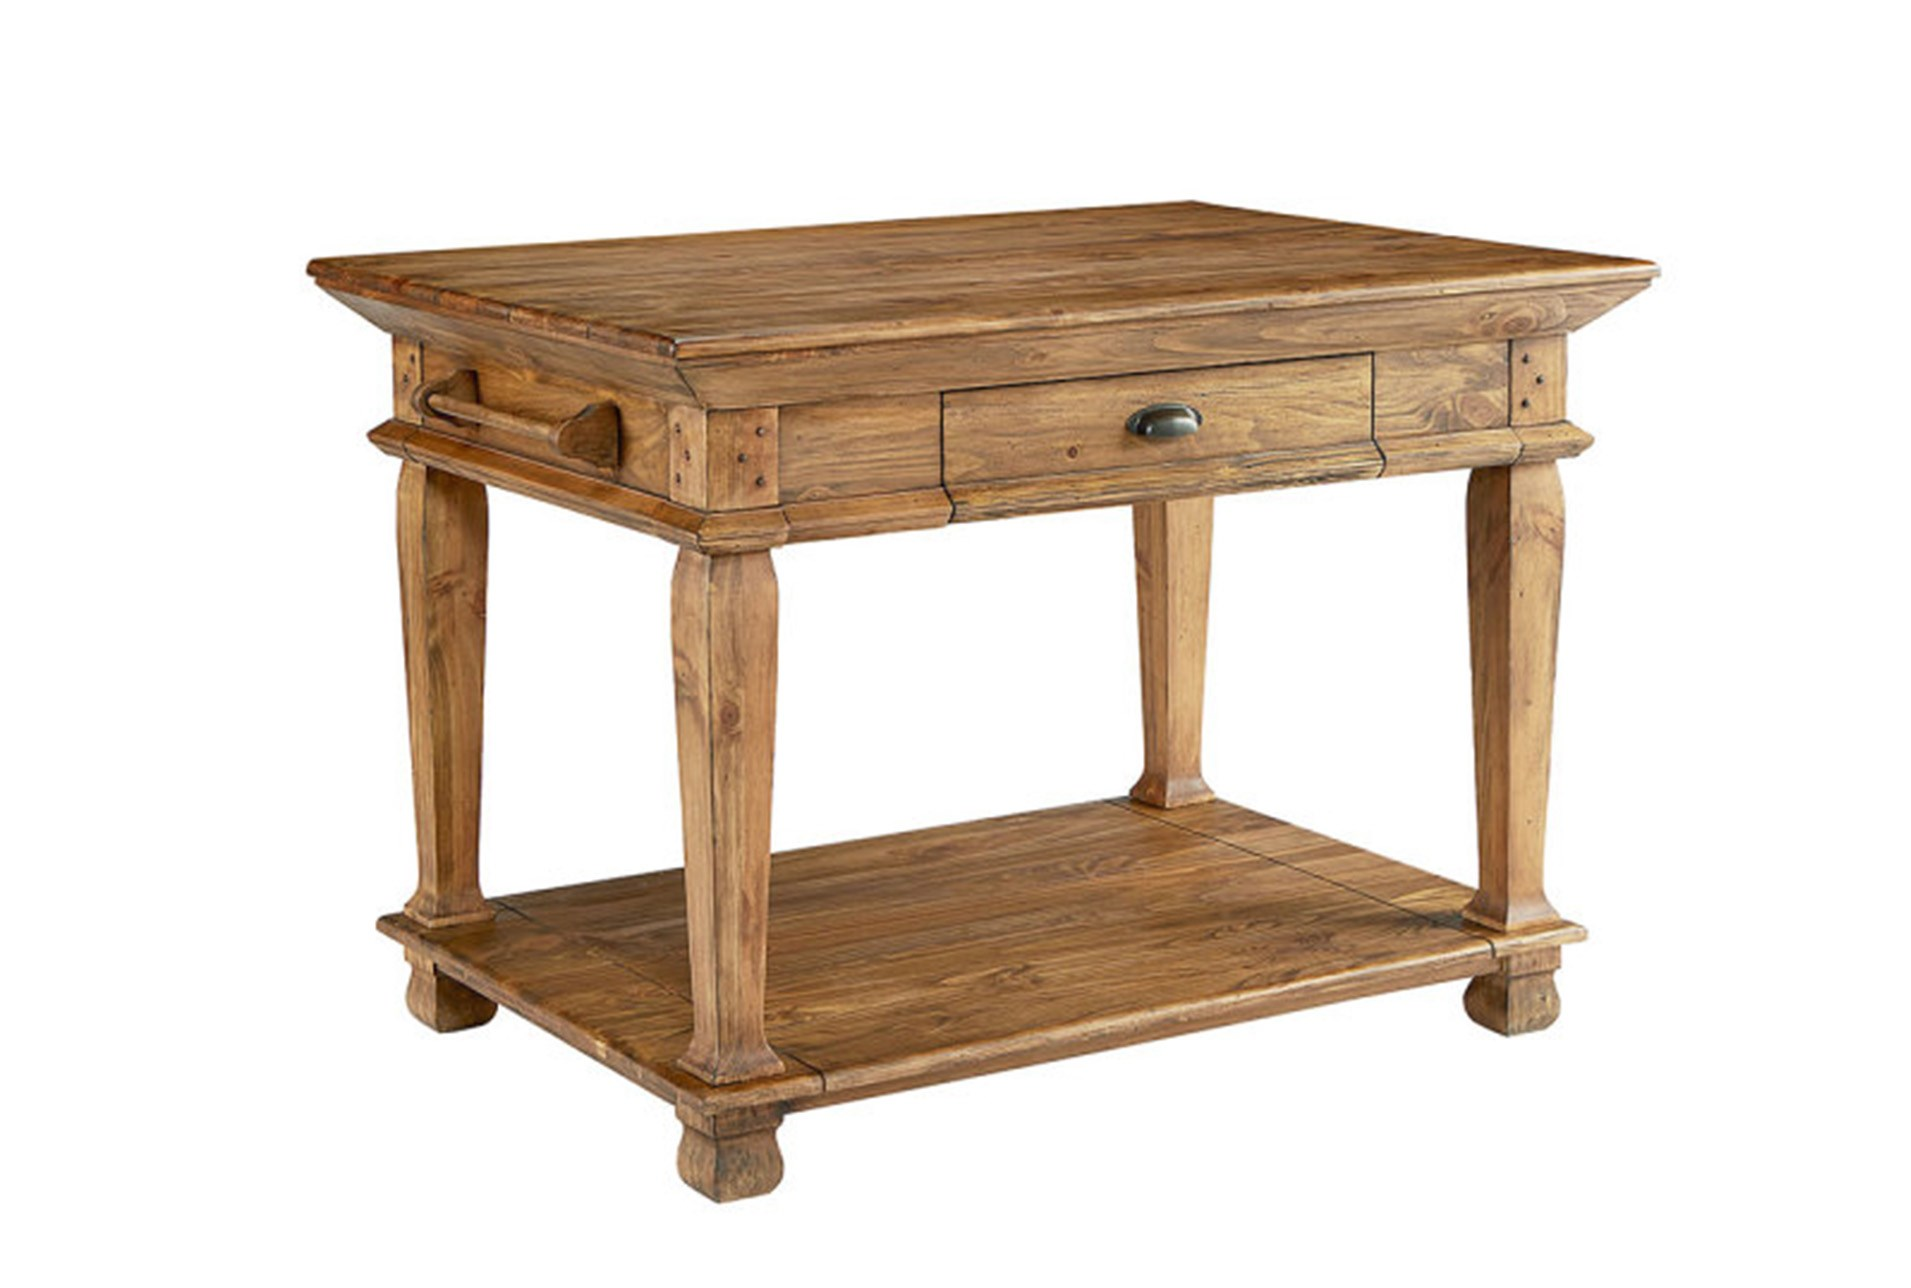 rouge product kitchen island today hardy maison overstock cart shipping free home natural rubberwood garden